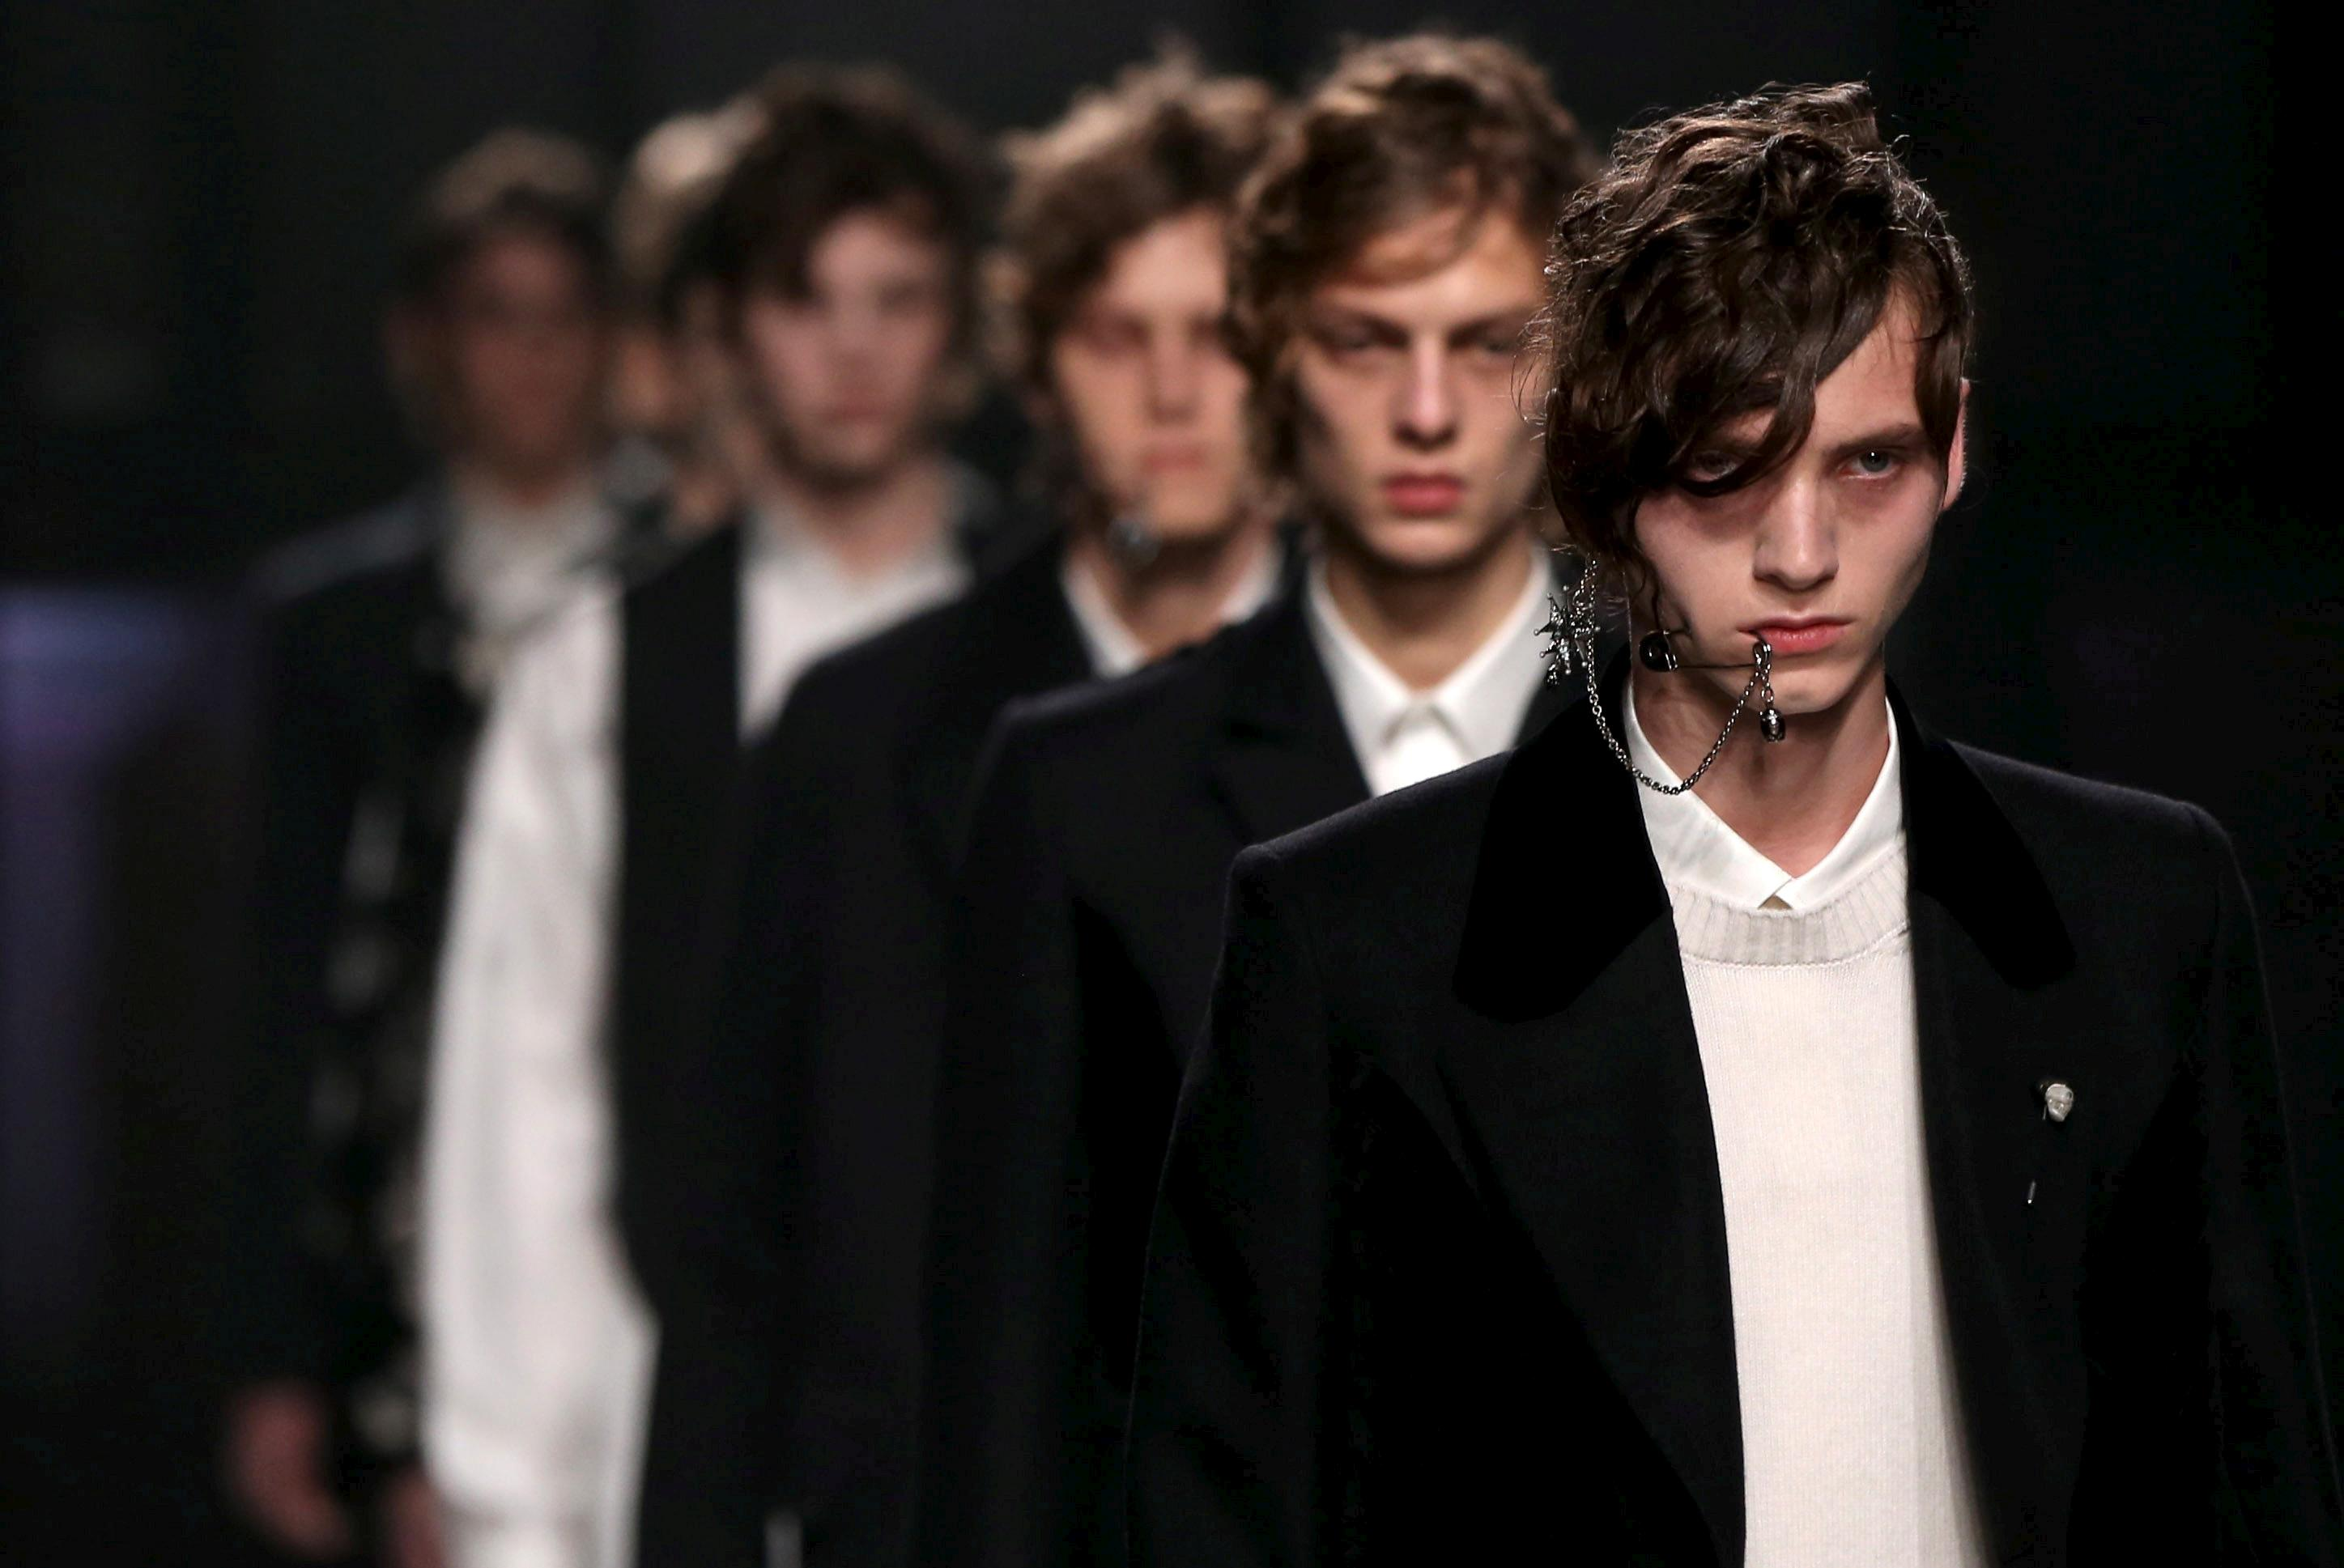 Milan and London Fashion Weeks join forces with anti-Brexit message